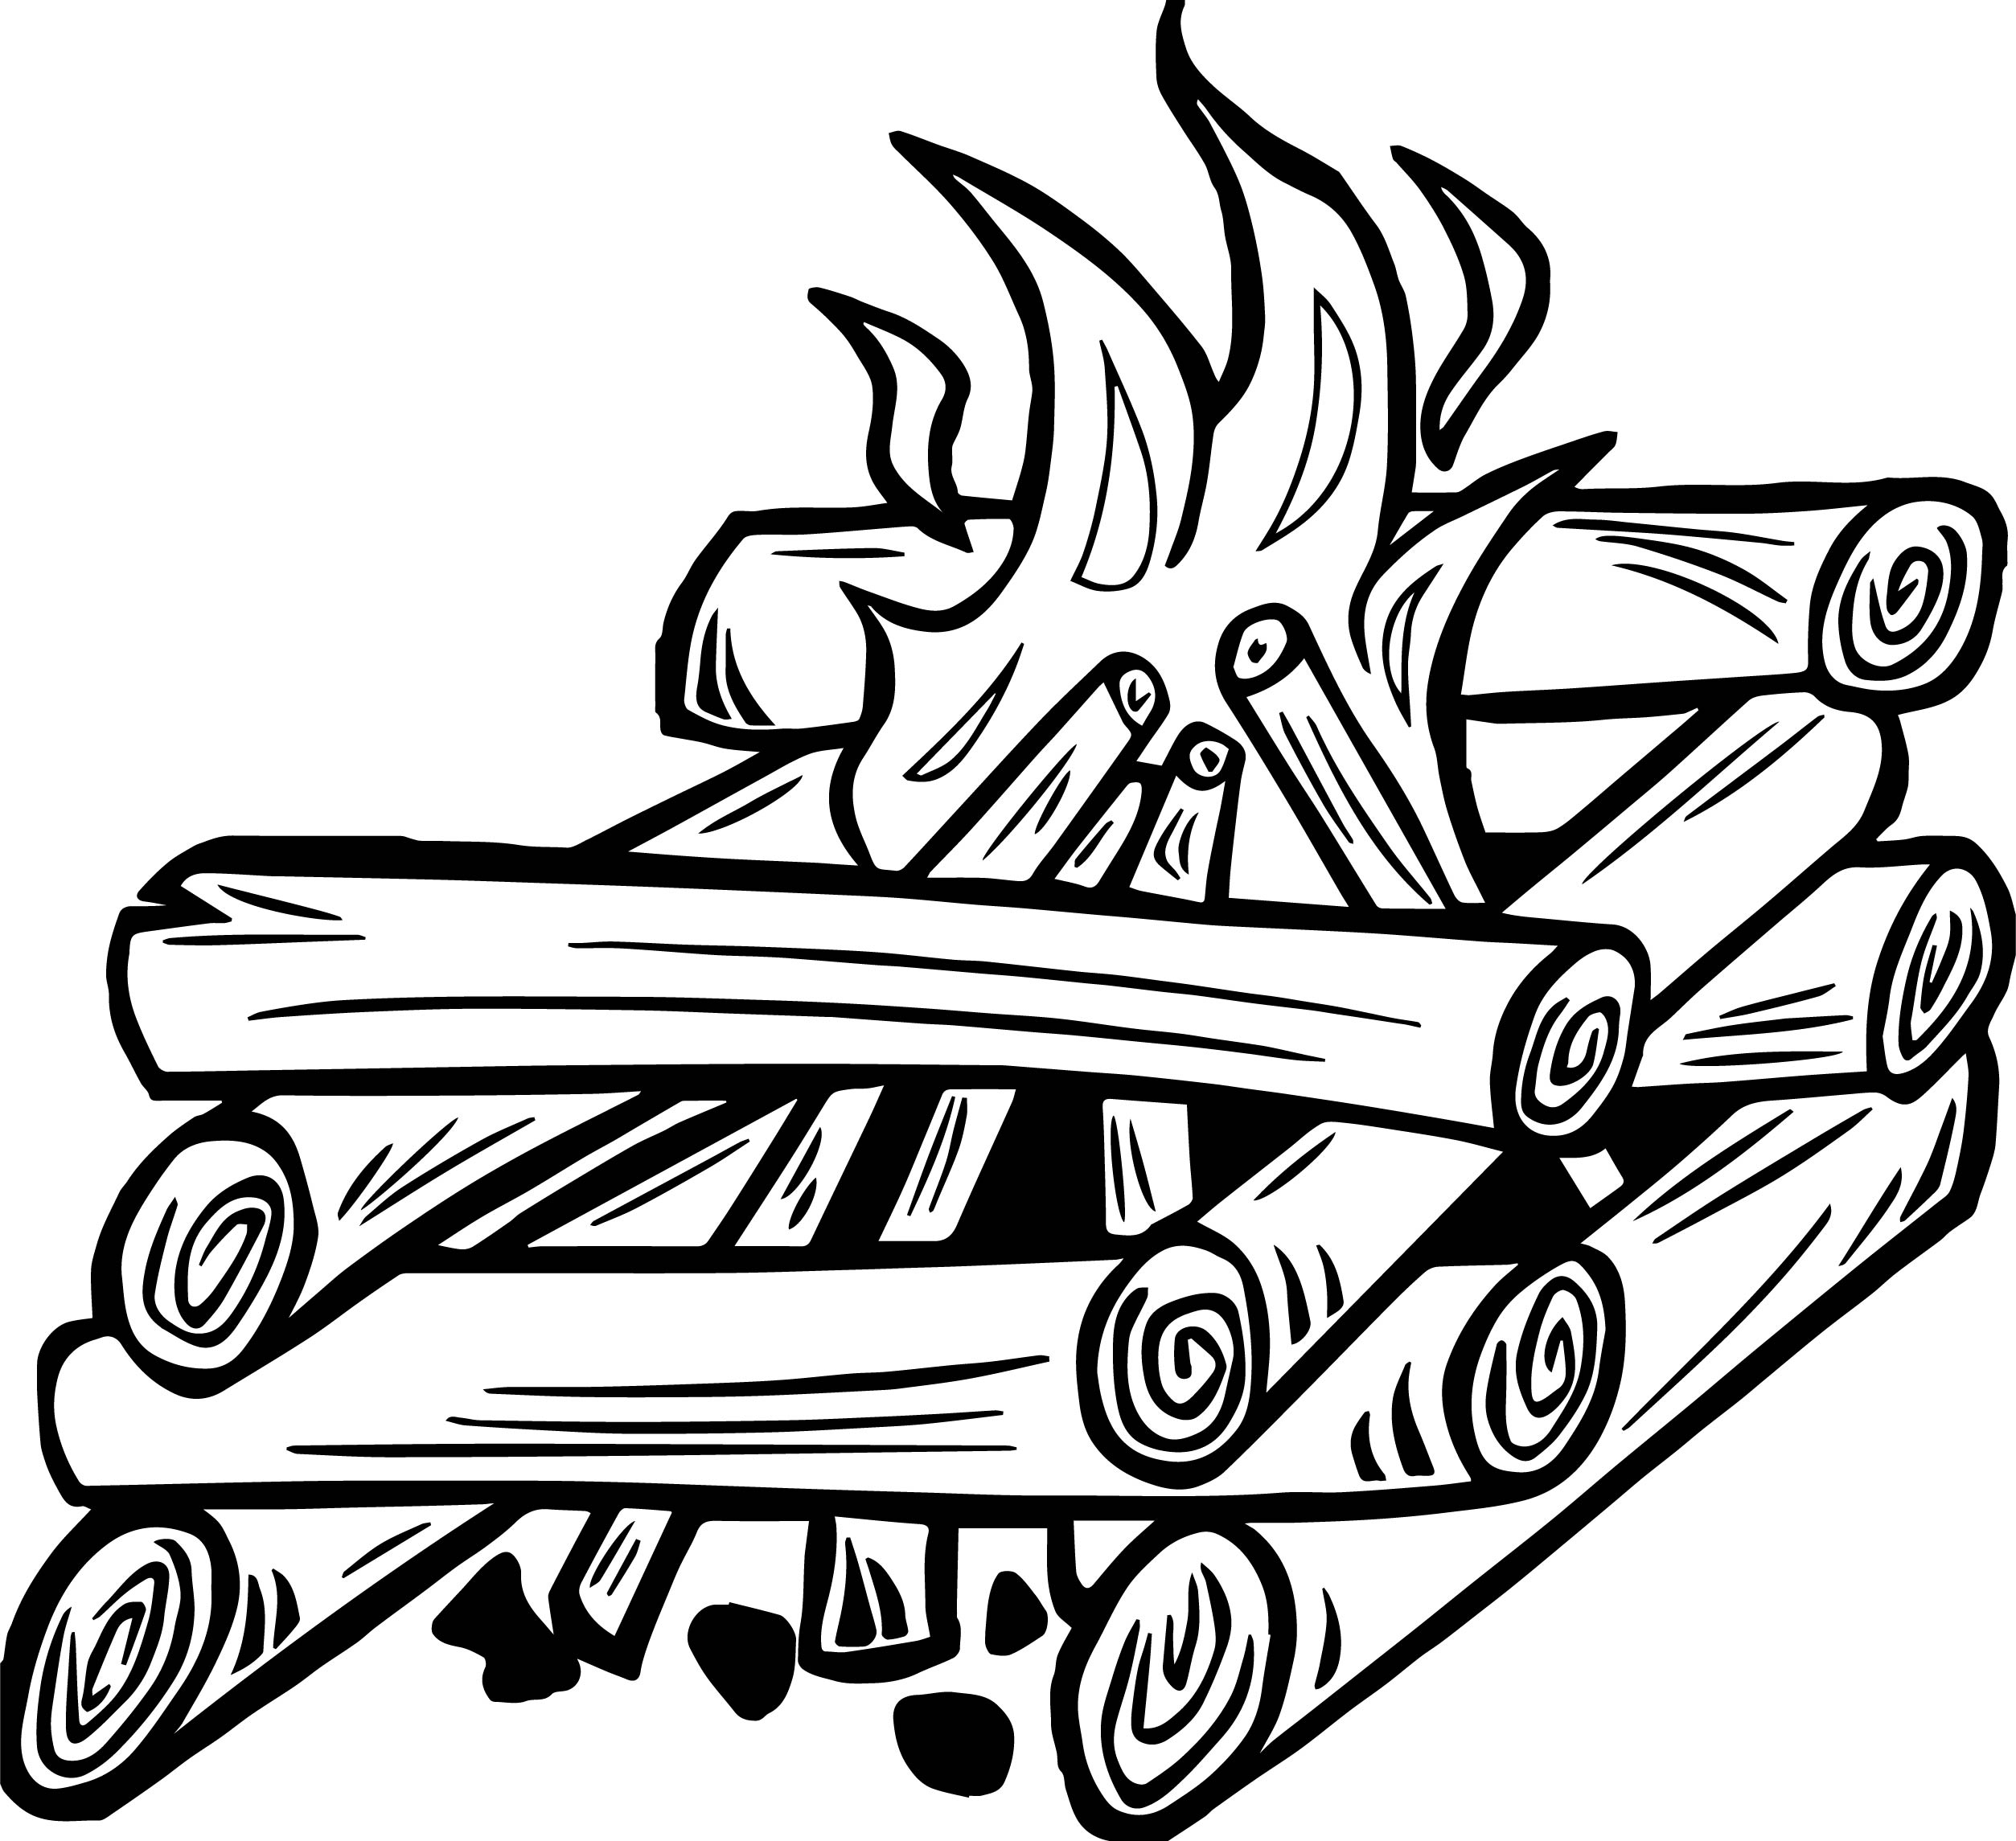 fire coloring page campfire coloring pages page fire coloring